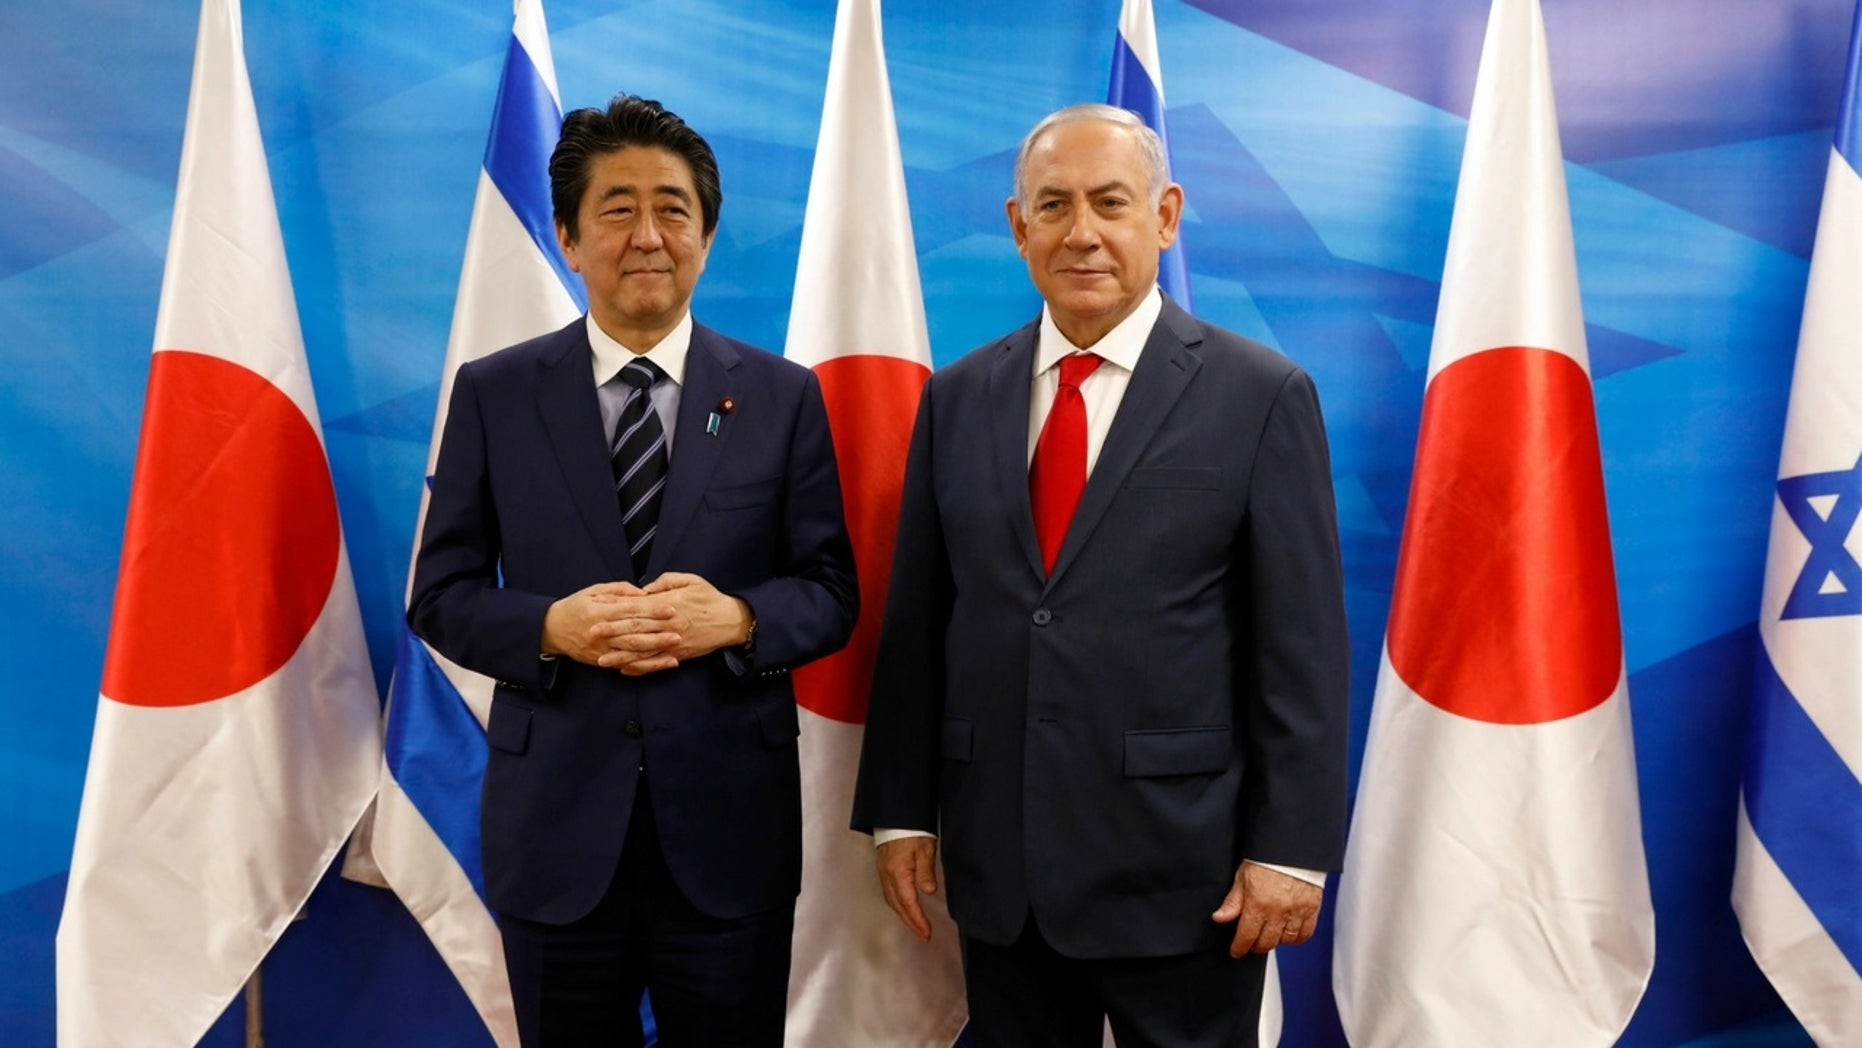 Japanese officials were reportedly horrified after Prime Minister Shinzo Abe was served dessert in a shoe during a dinner with Israeli Prime Minister Benjamin Netanyahu.